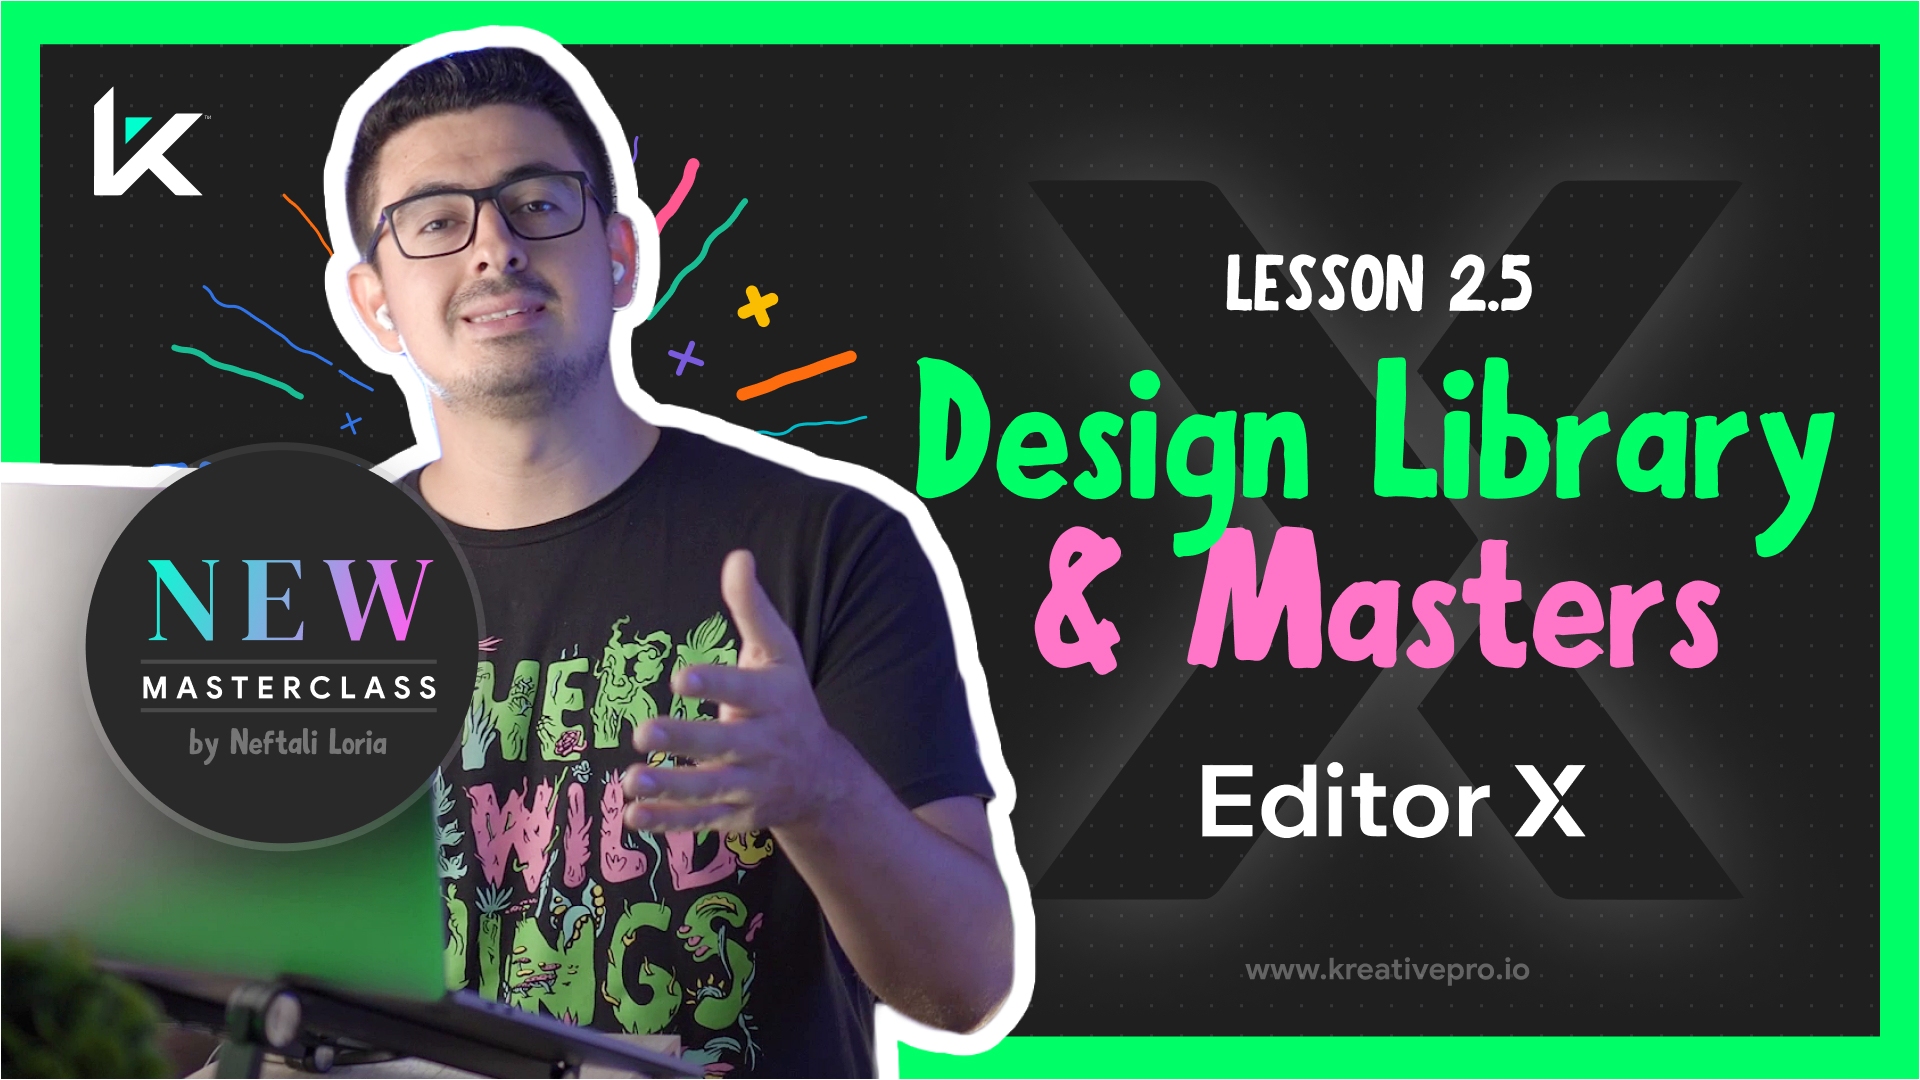 Editor X 2.5 - Editor X Design Library and Masters